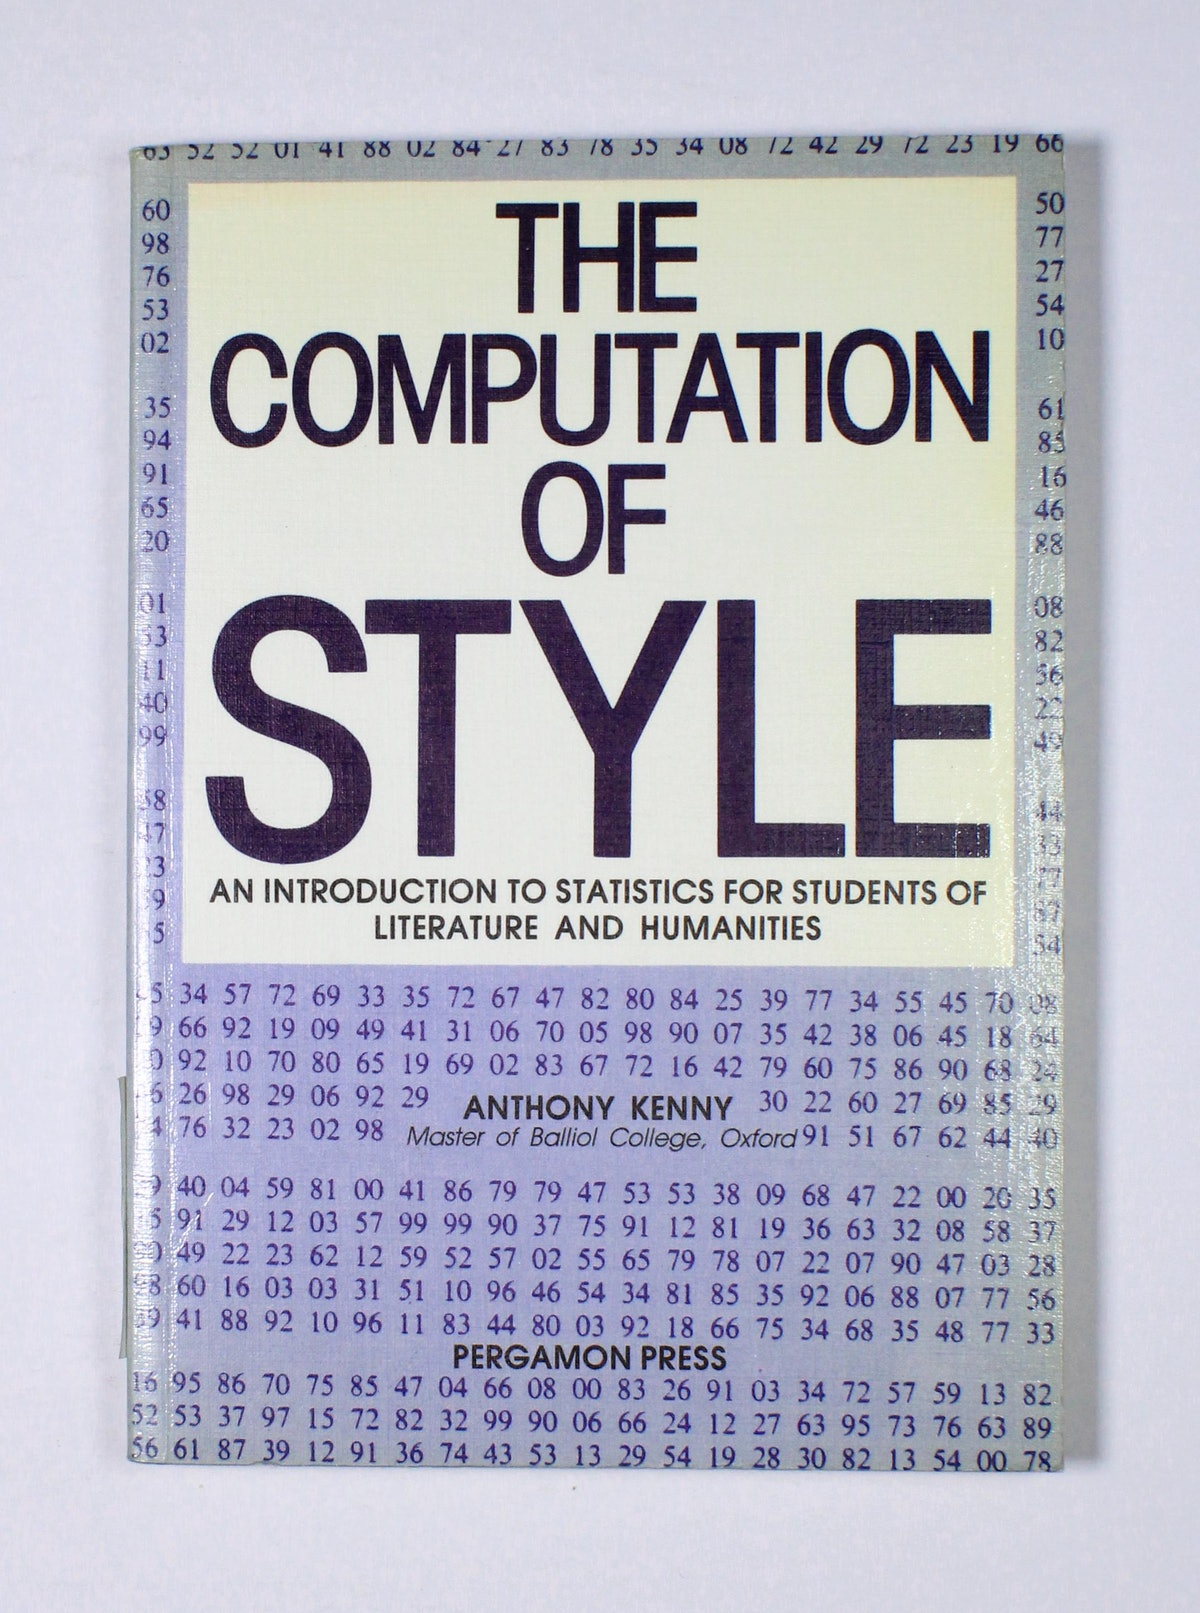 The Computation of Style: An Introduction to Statistics for Students of Literature and Humanities